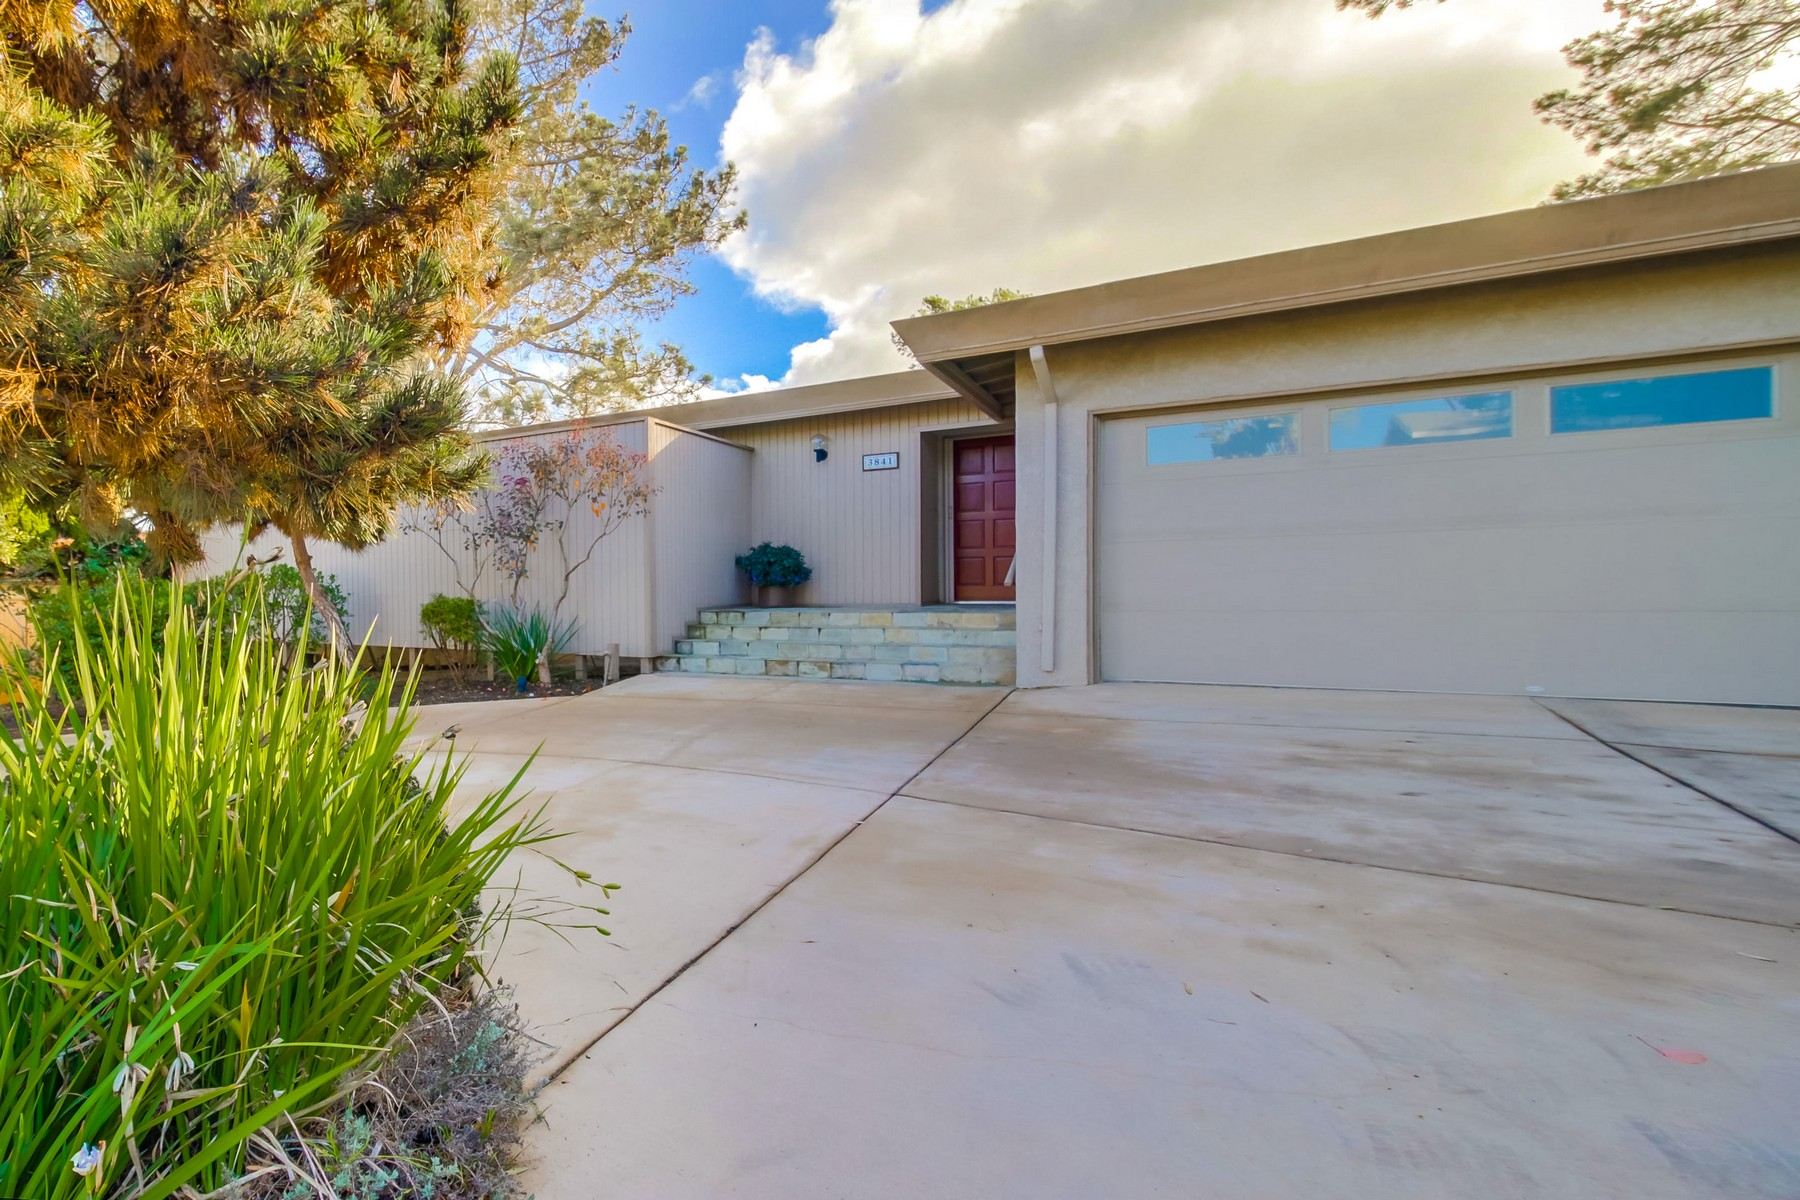 Single Family Home for Sale at 3841 Garden Lane San Diego, California 92106 United States